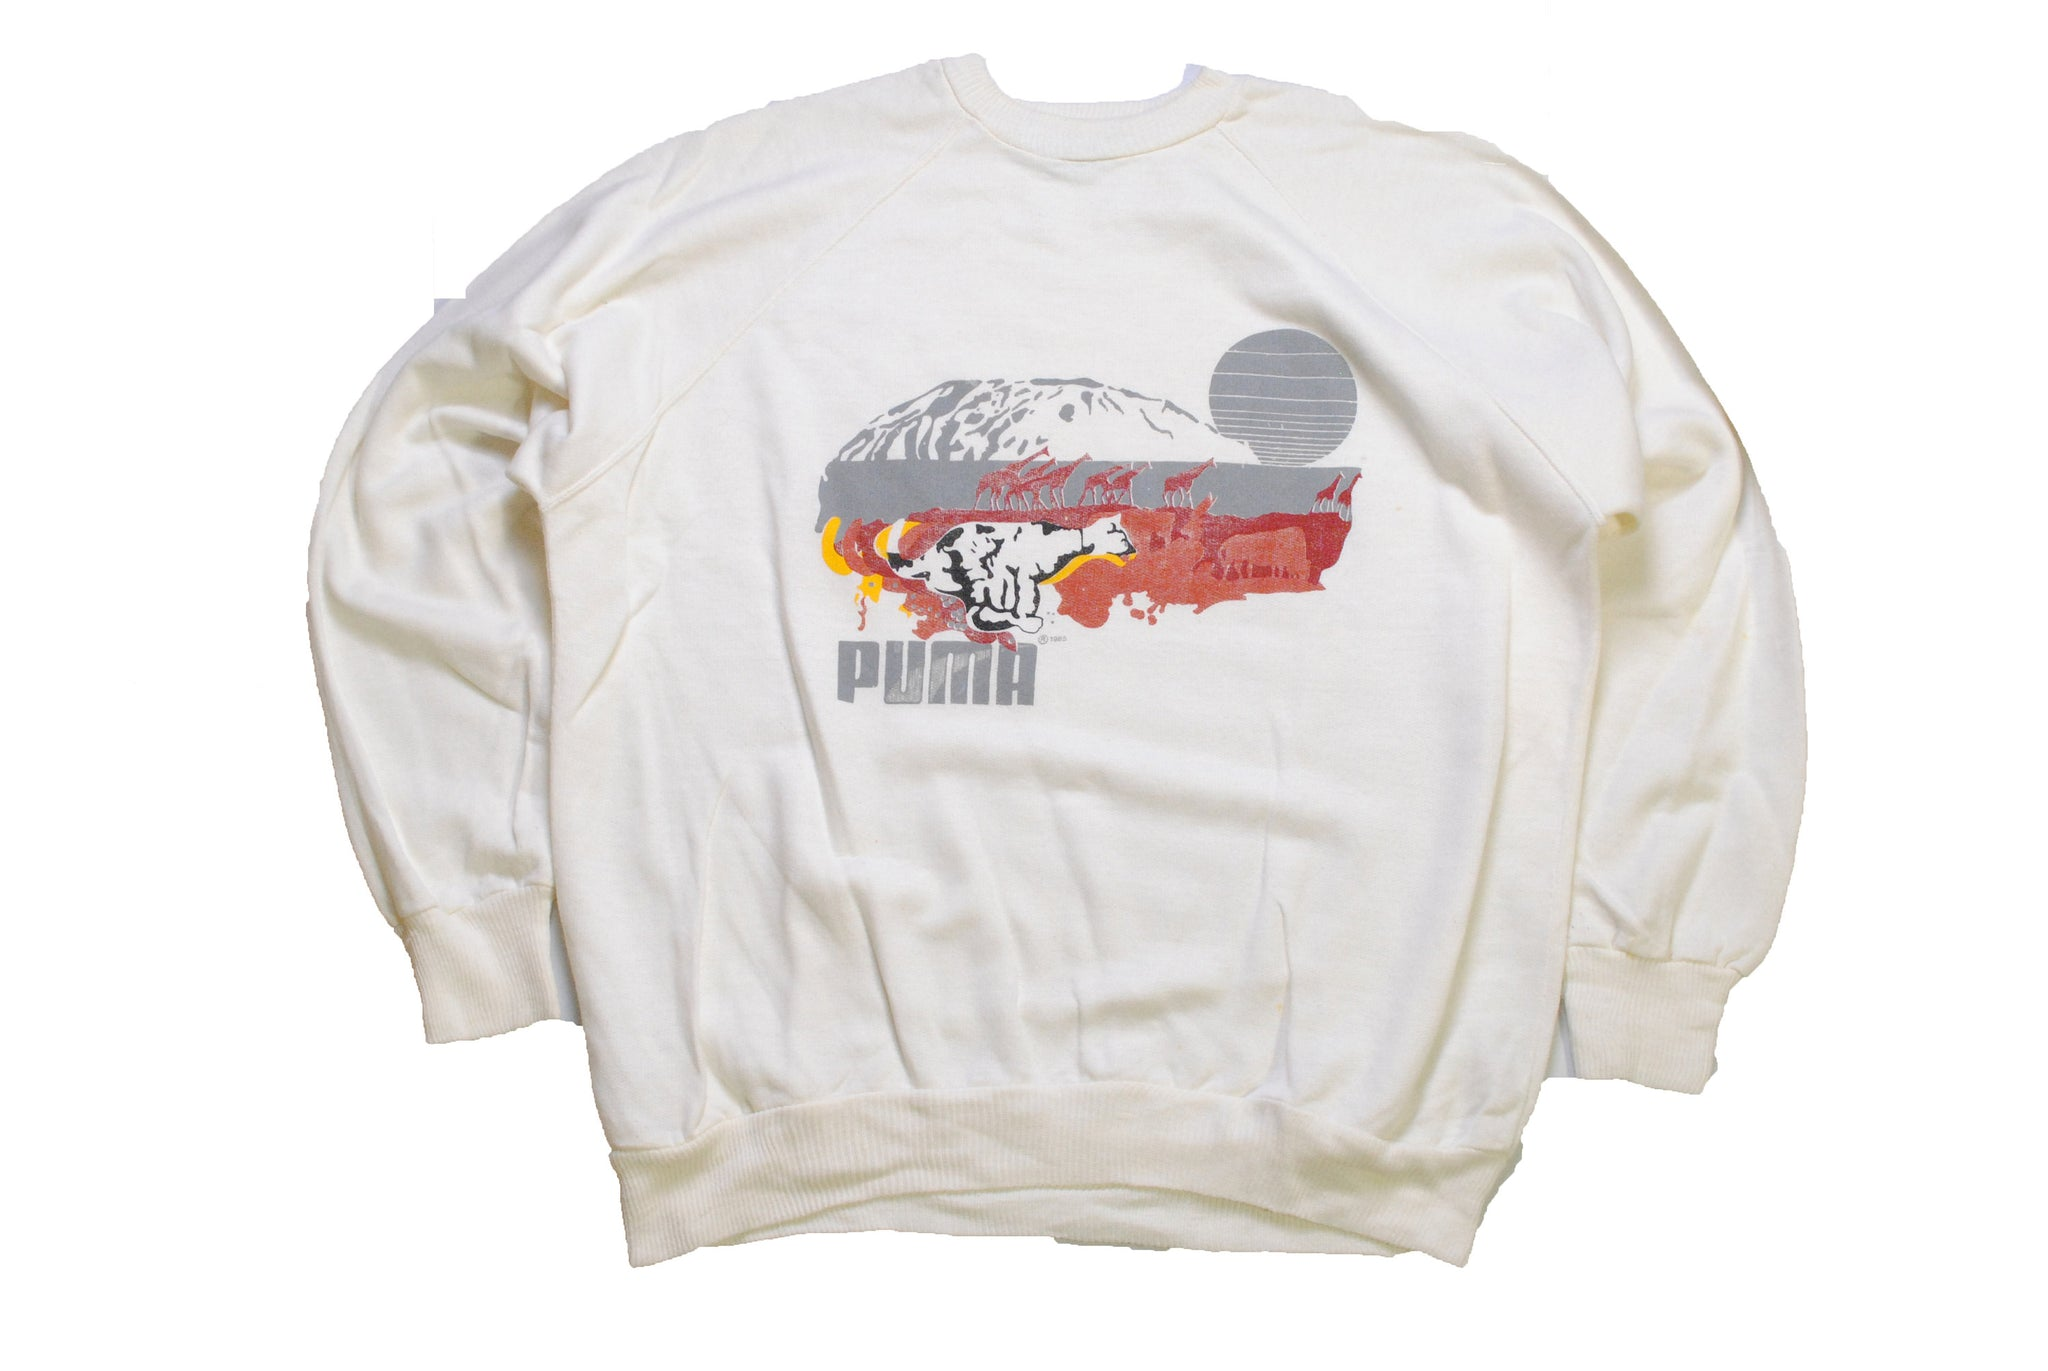 vintage 1985 PUMA big logo sweatshirt authentic white safari Wear Size XL mens athletic sport outfit retro wear sweater 90's 80's streetwear